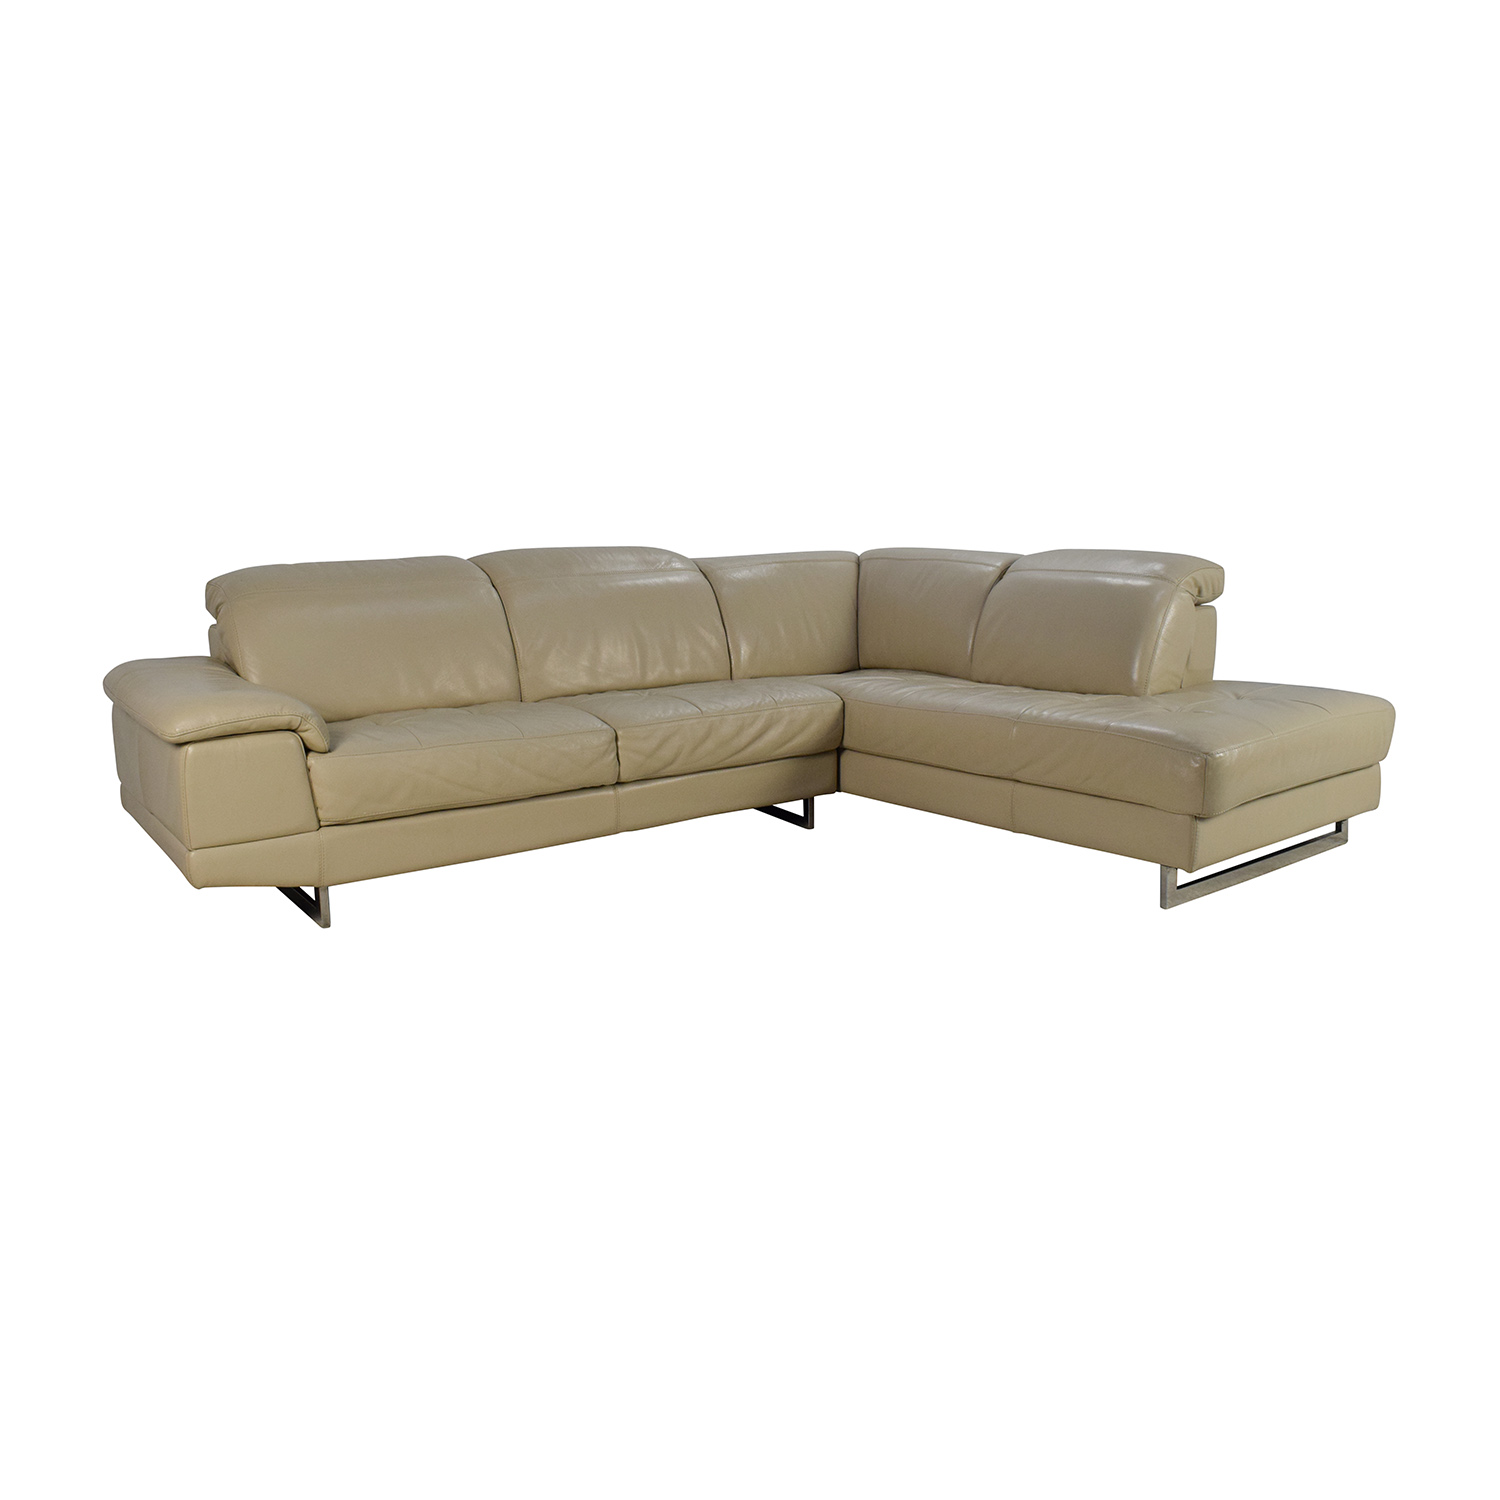 83% OFF Beige Italian Leather Couch with Adjustable Headrests